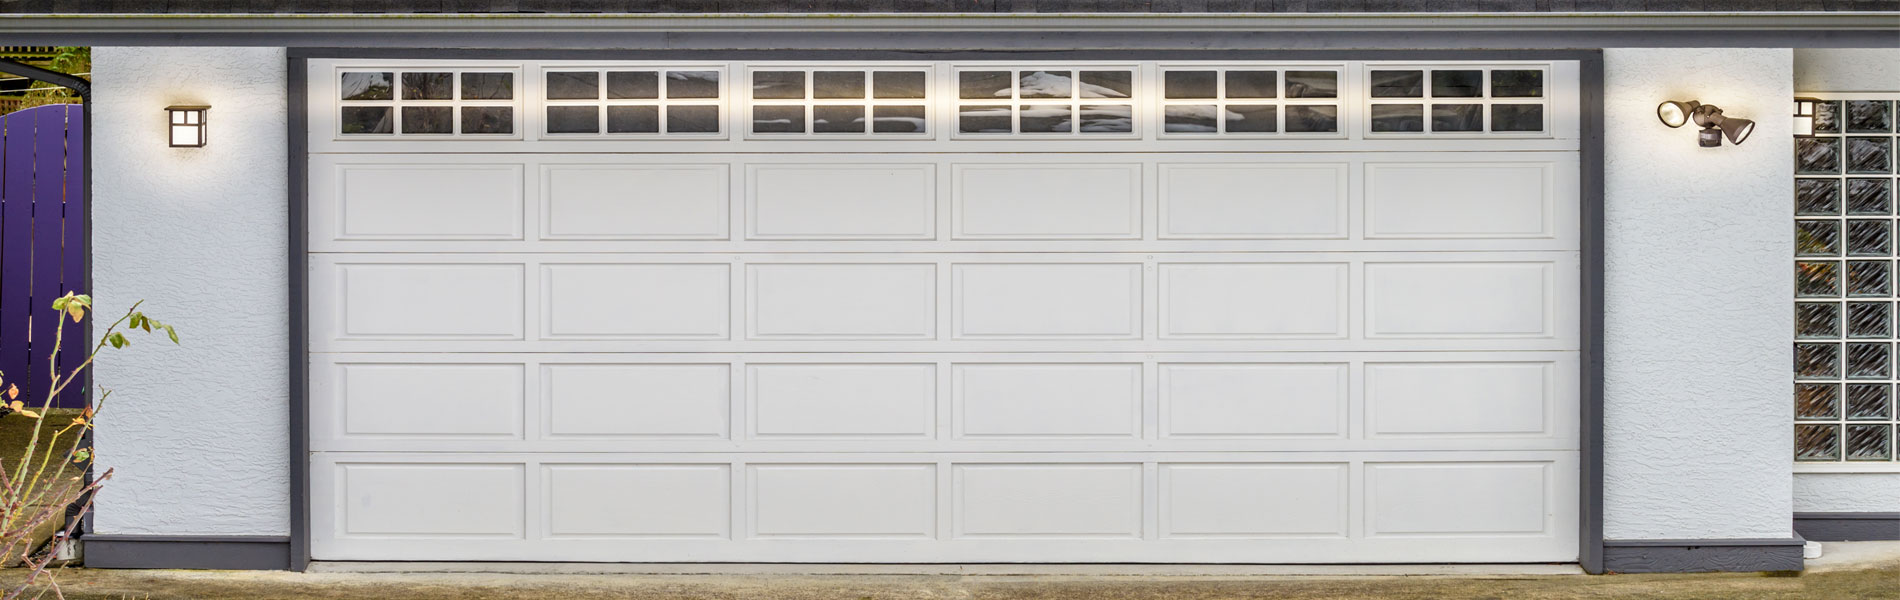 Exclusive Garage Door Service, Cleveland, OH 216-245-1178